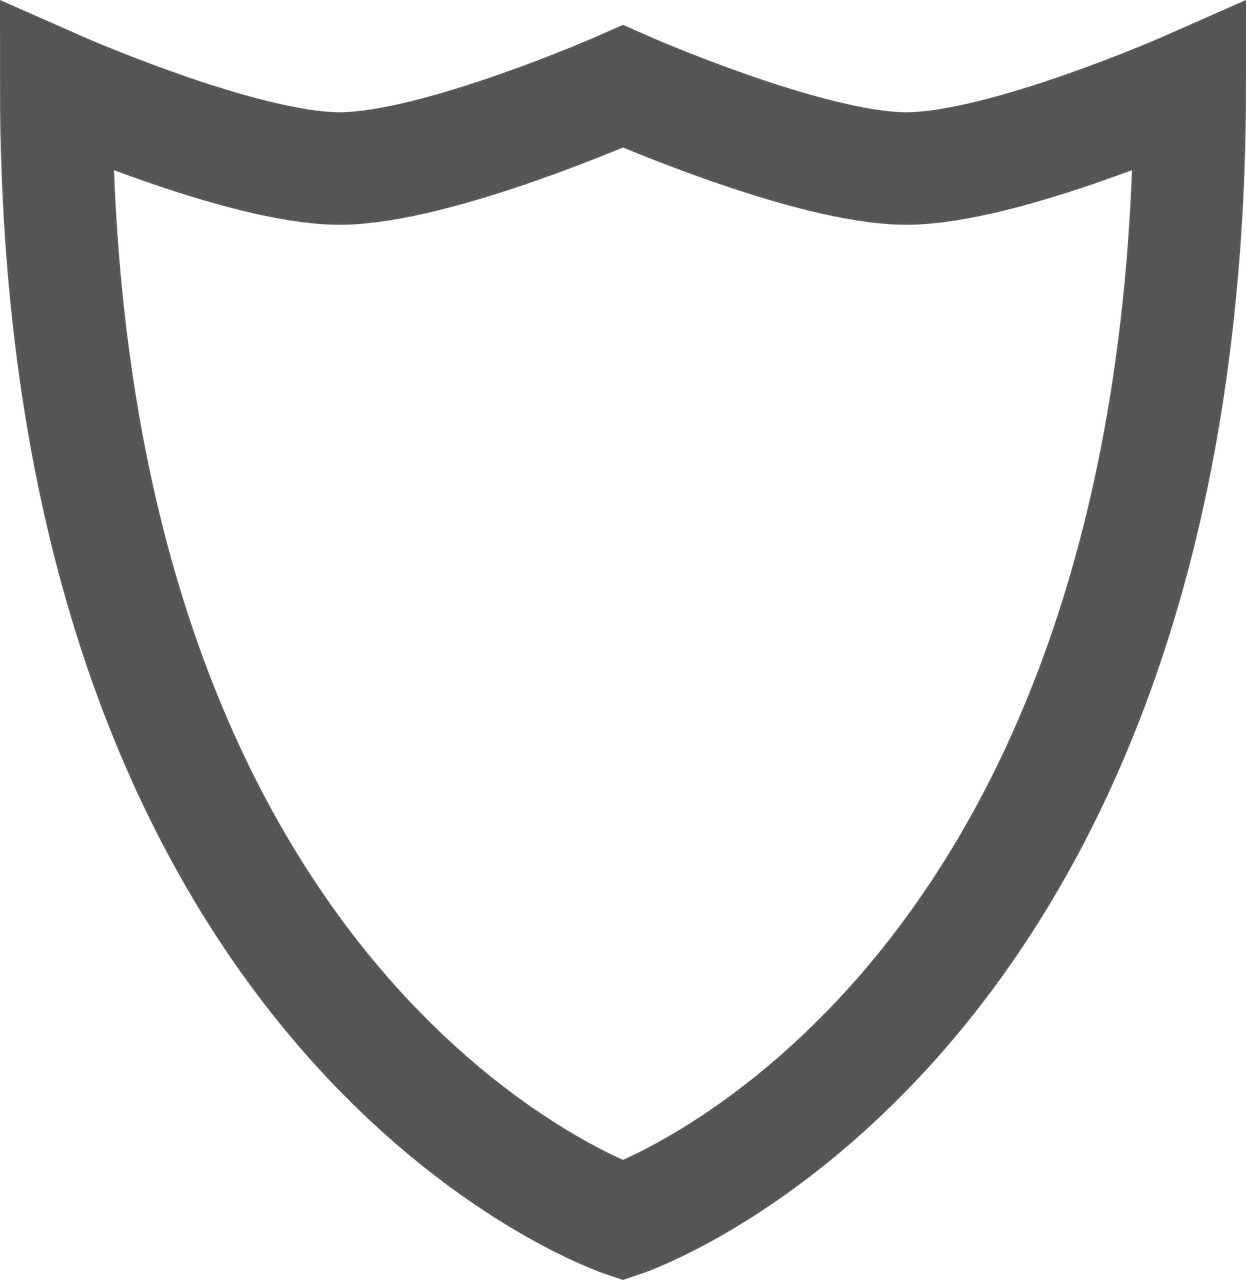 https://techpomocit.pl/images/dp01/shield-1970470_1280.png